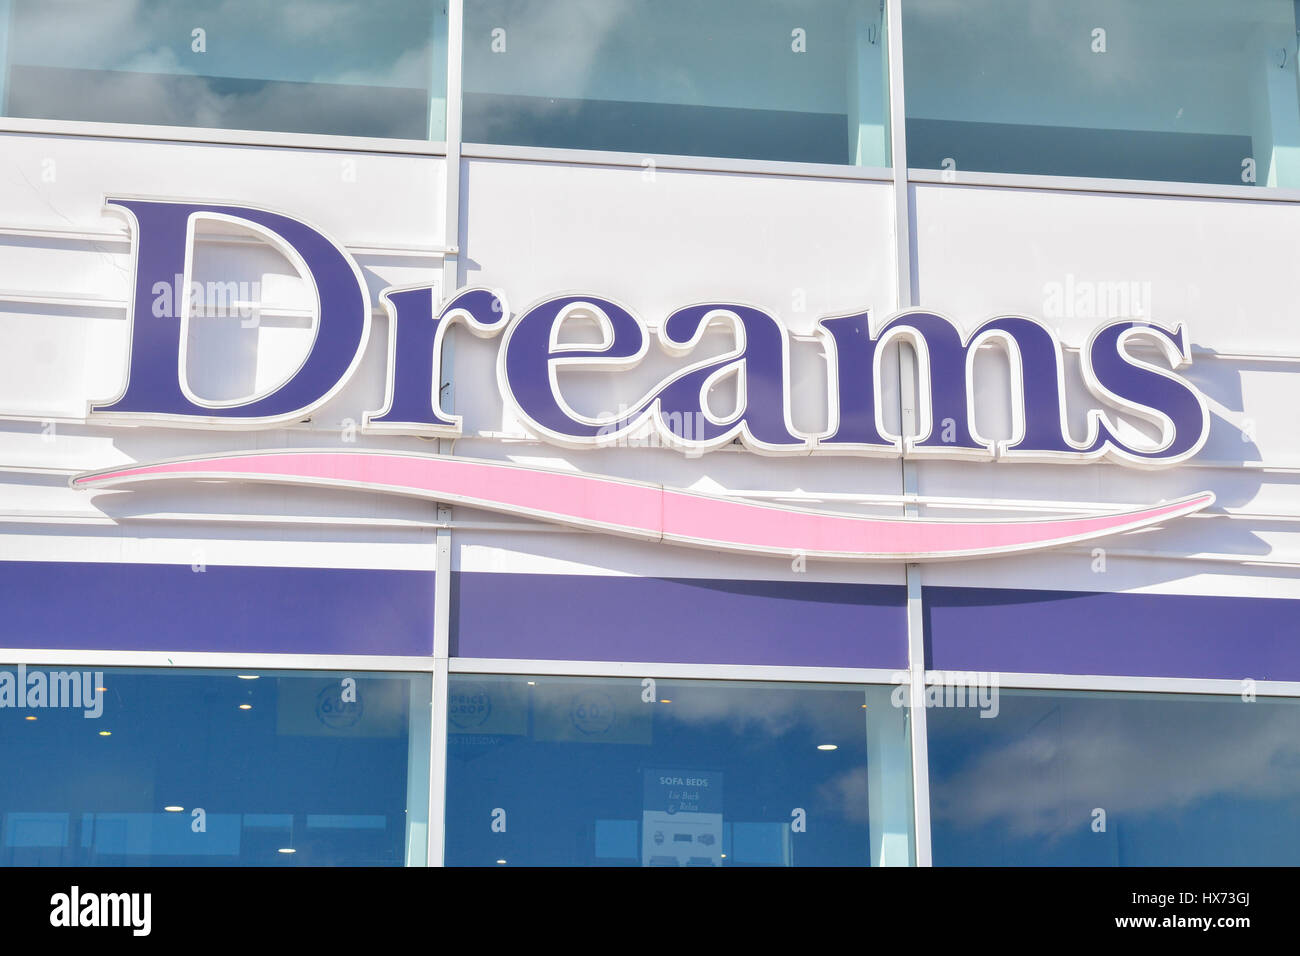 Dreams Beds sign - Stock Image